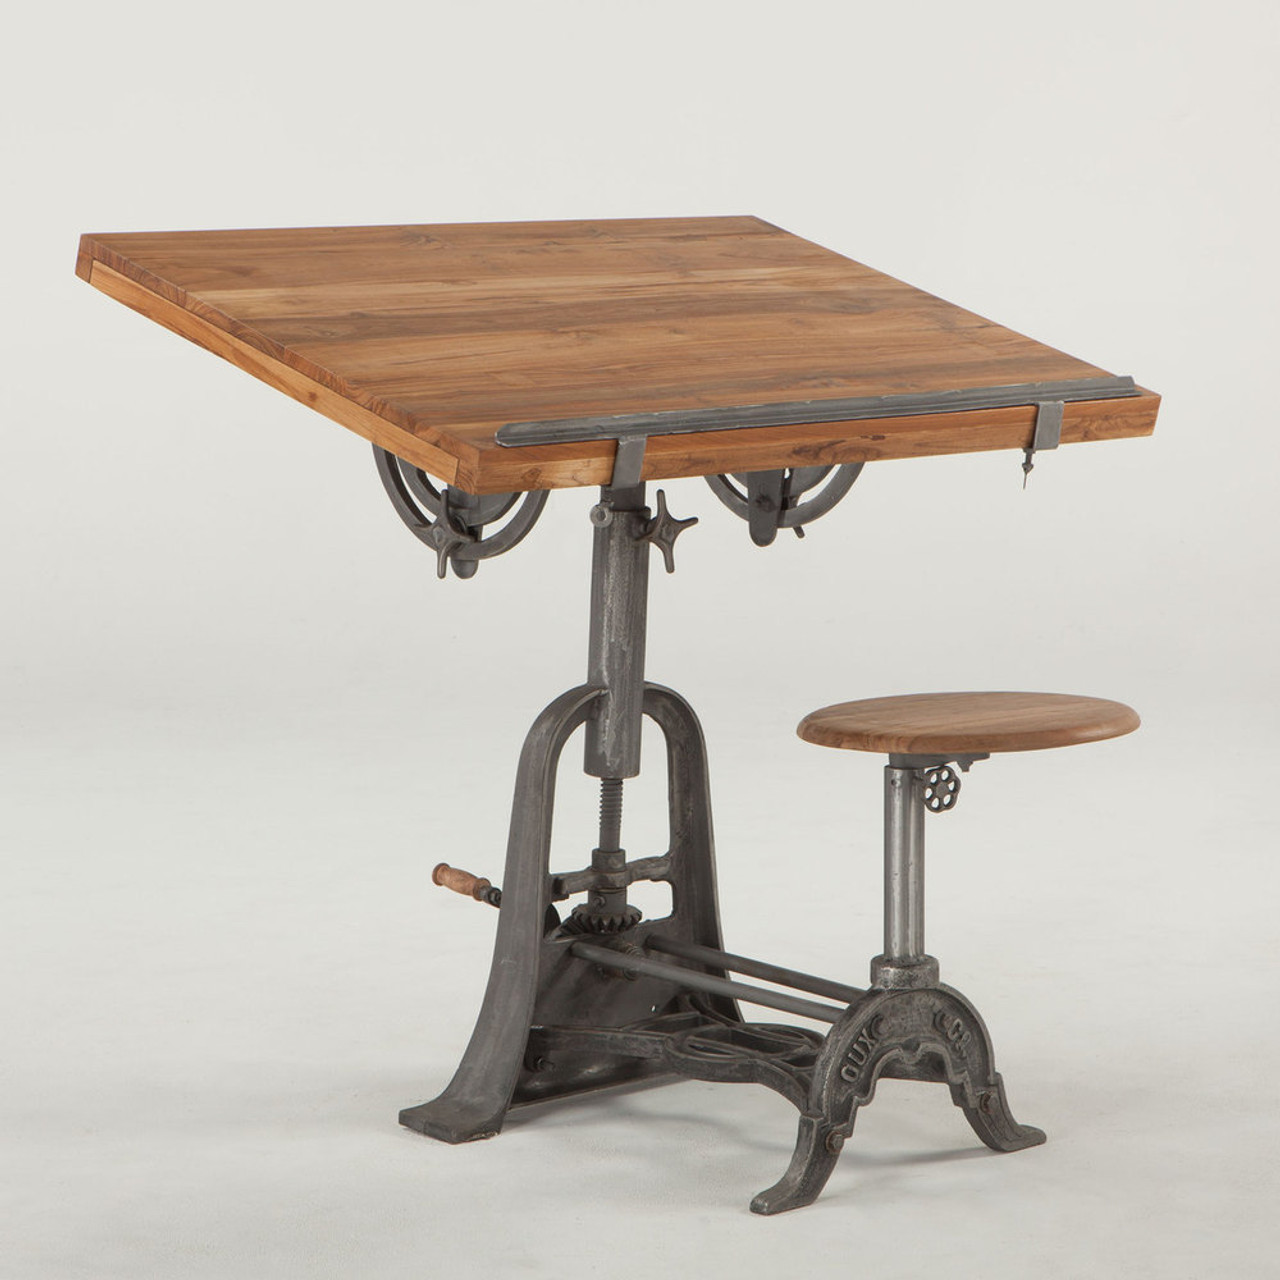 Charmant French Vintage Industrial Architect Drafting Table With Attached Seat | Zin  Home